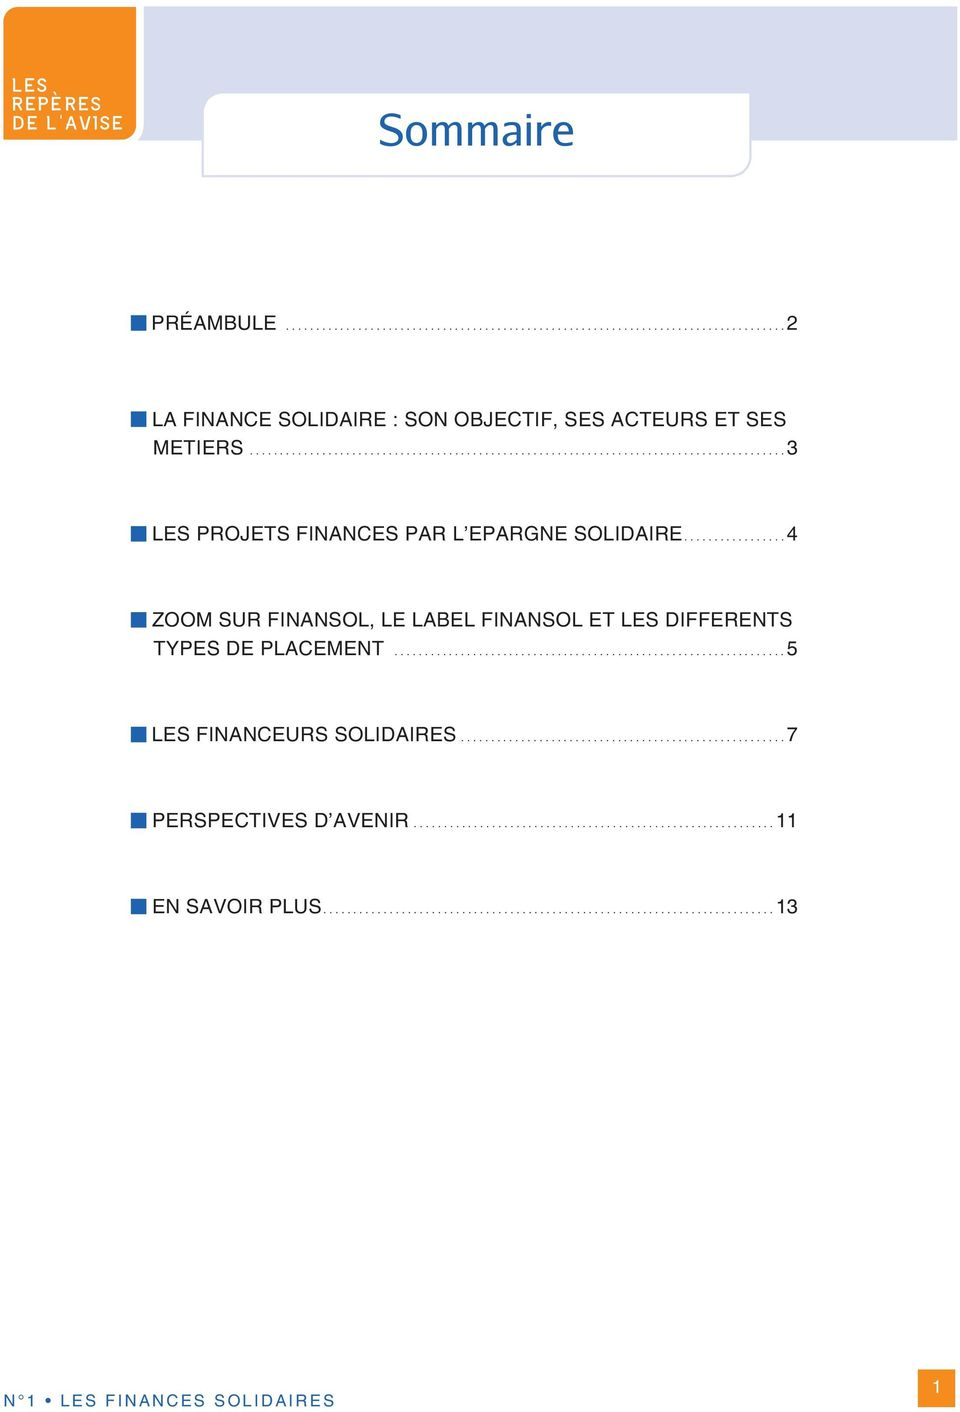 ................ 4 ZOOM SUR FINANSOL, LE LABEL FINANSOL ET LES DIFFERENTS TYPES DE PLACEMENT................................................................. 5 LES FINANCEURS SOLIDAIRES.